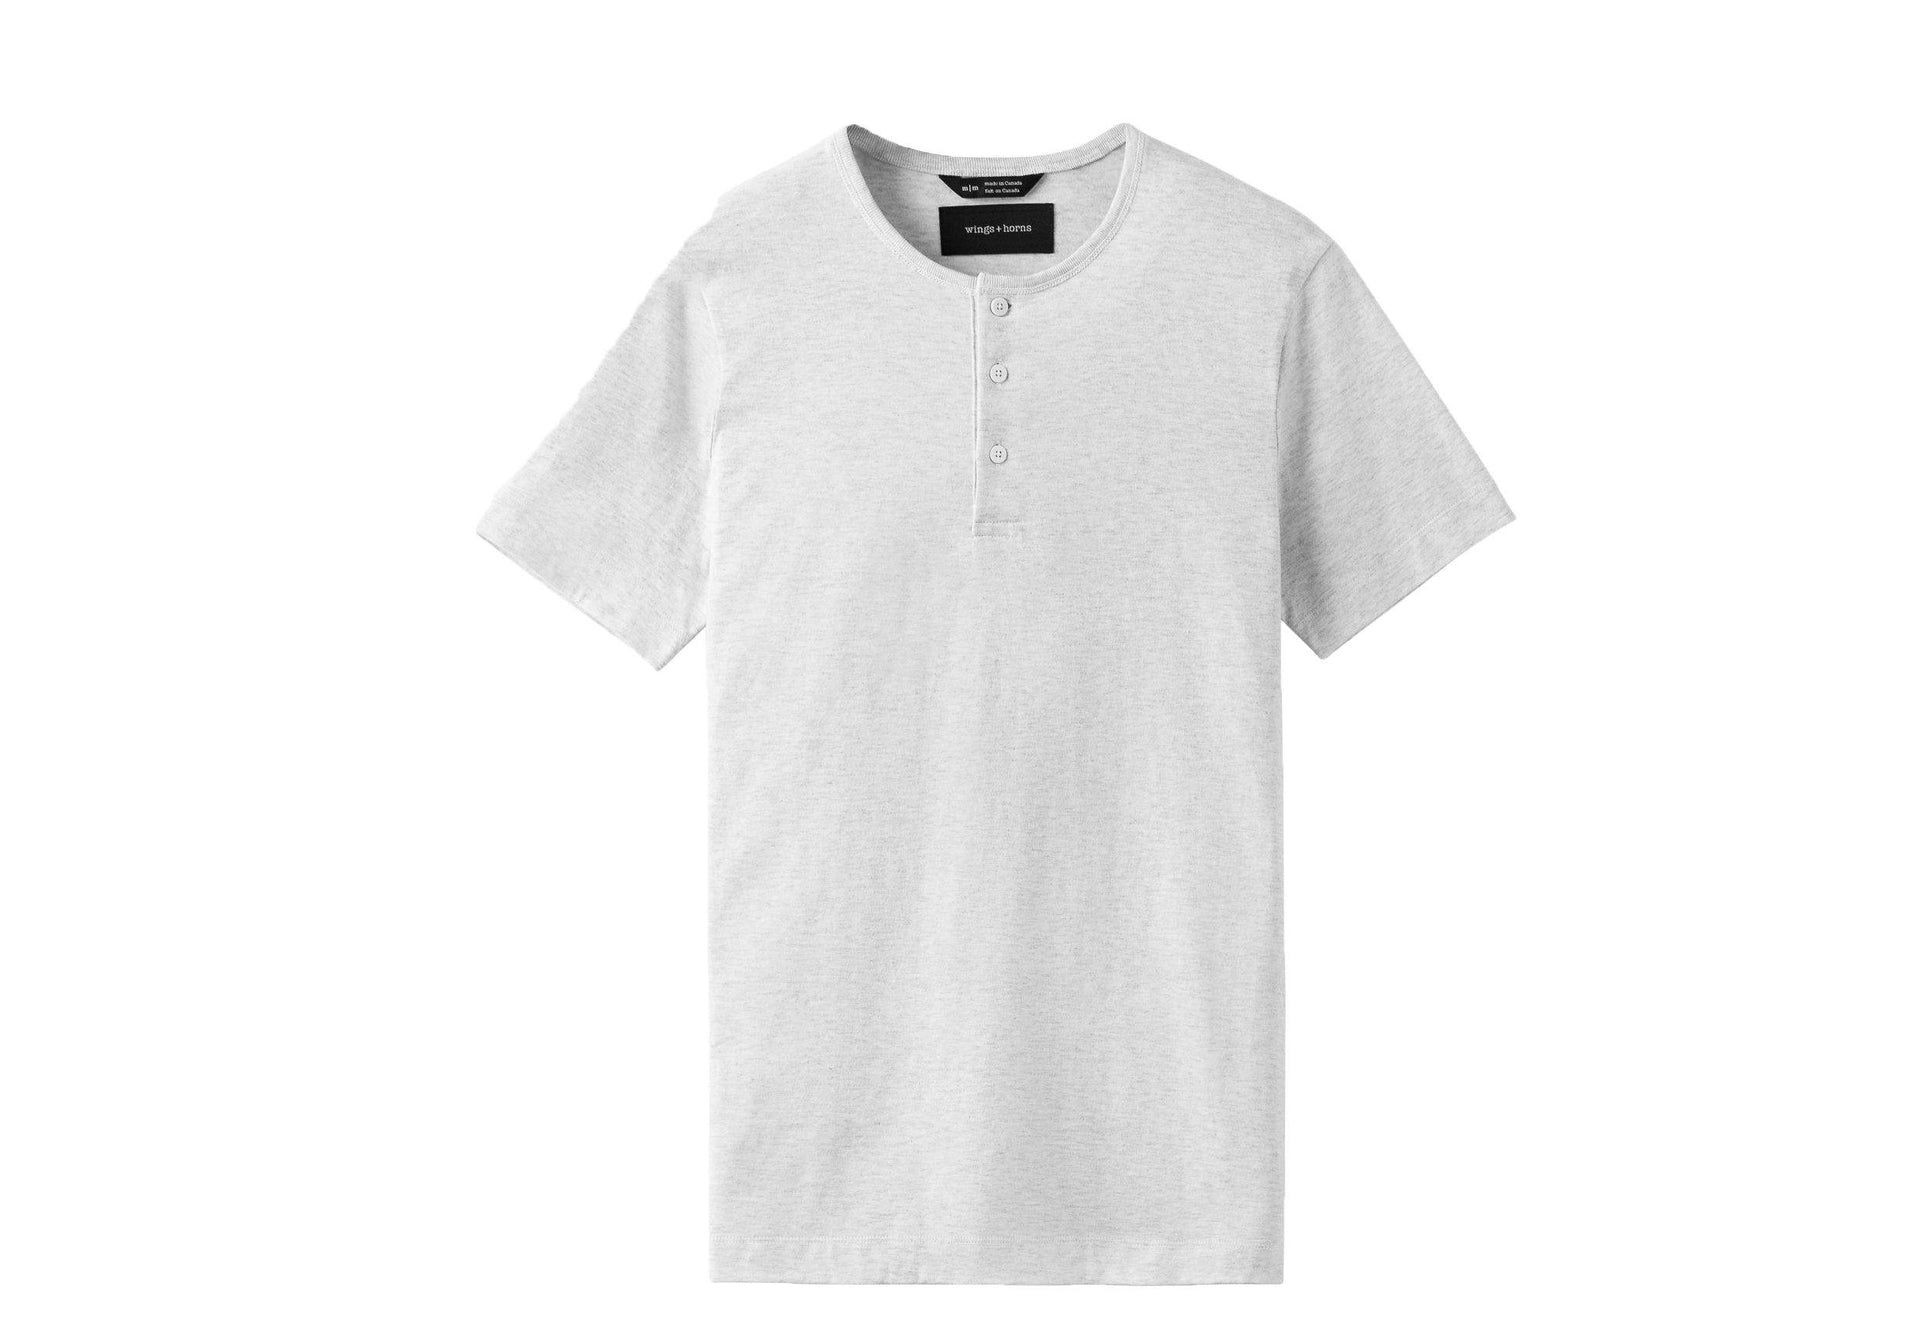 KNIT PIMA JERSEY HENLEY-WI-1132 MENS SOFTGOODS WINGS+HORNS